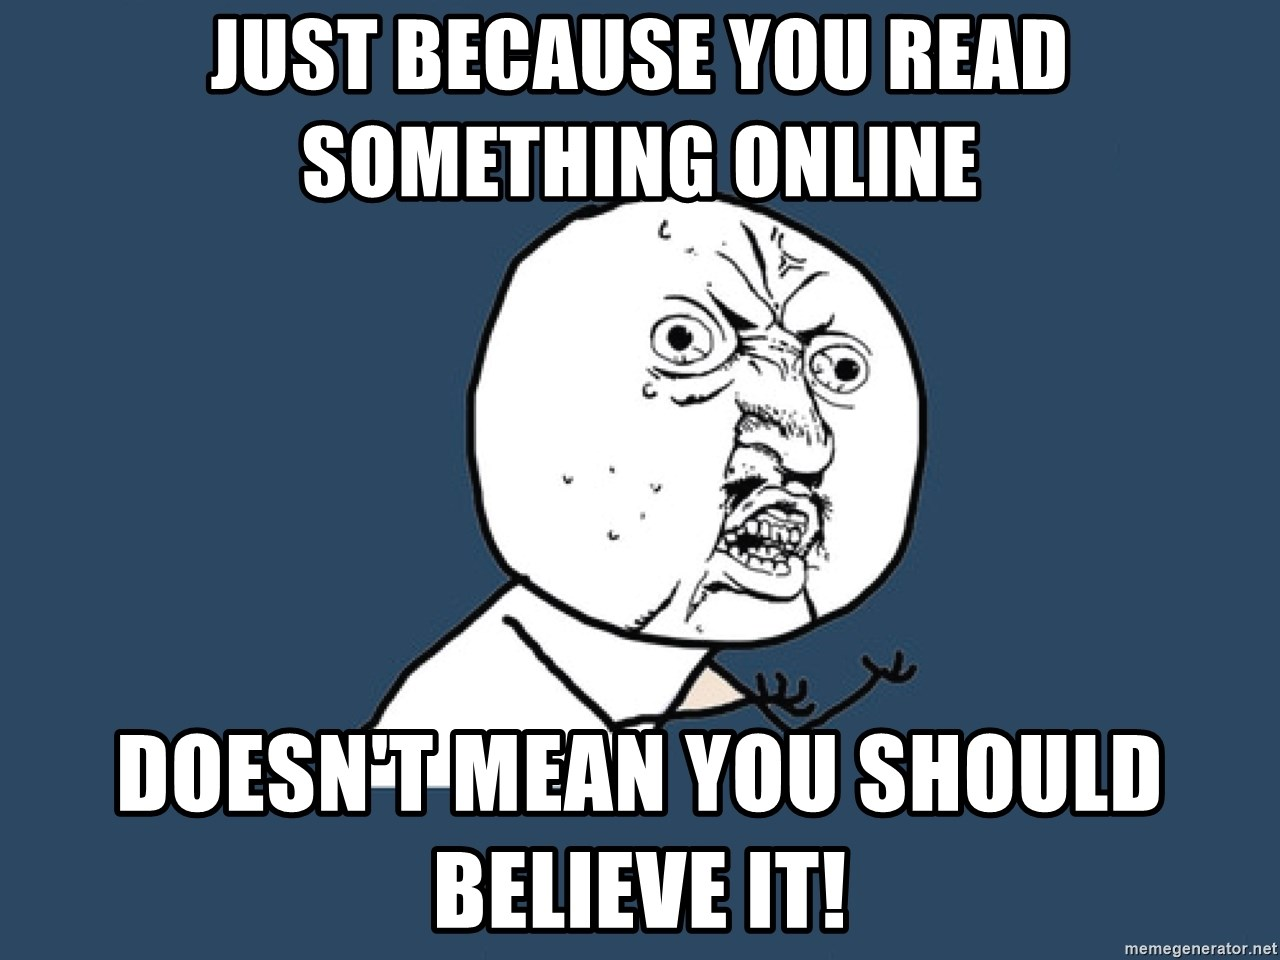 Y U No - Just because you read something online doesn't mean you should believe it!